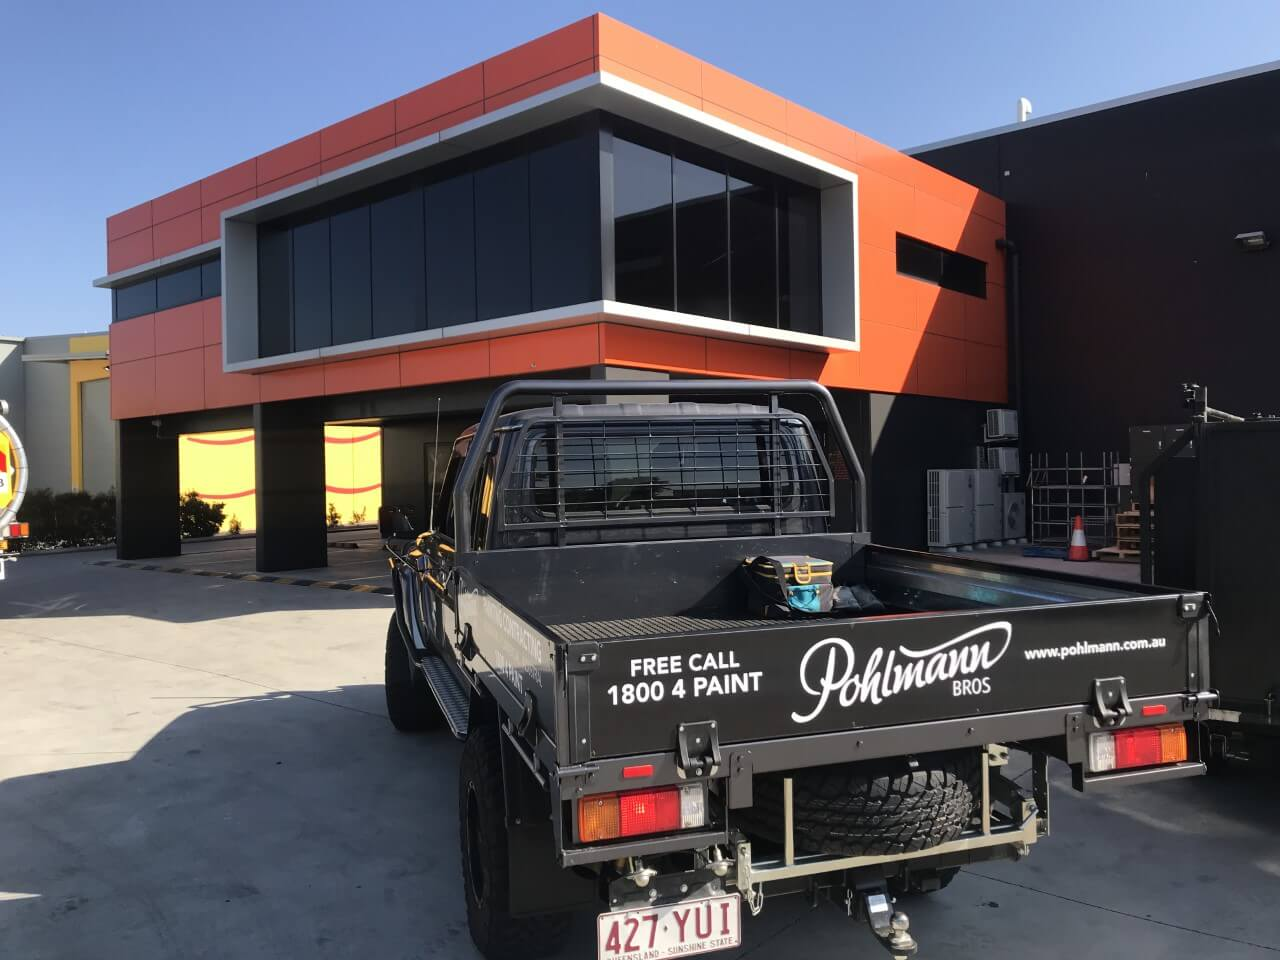 Pohlmanns Domestic Commercial Painters Brisbane 438